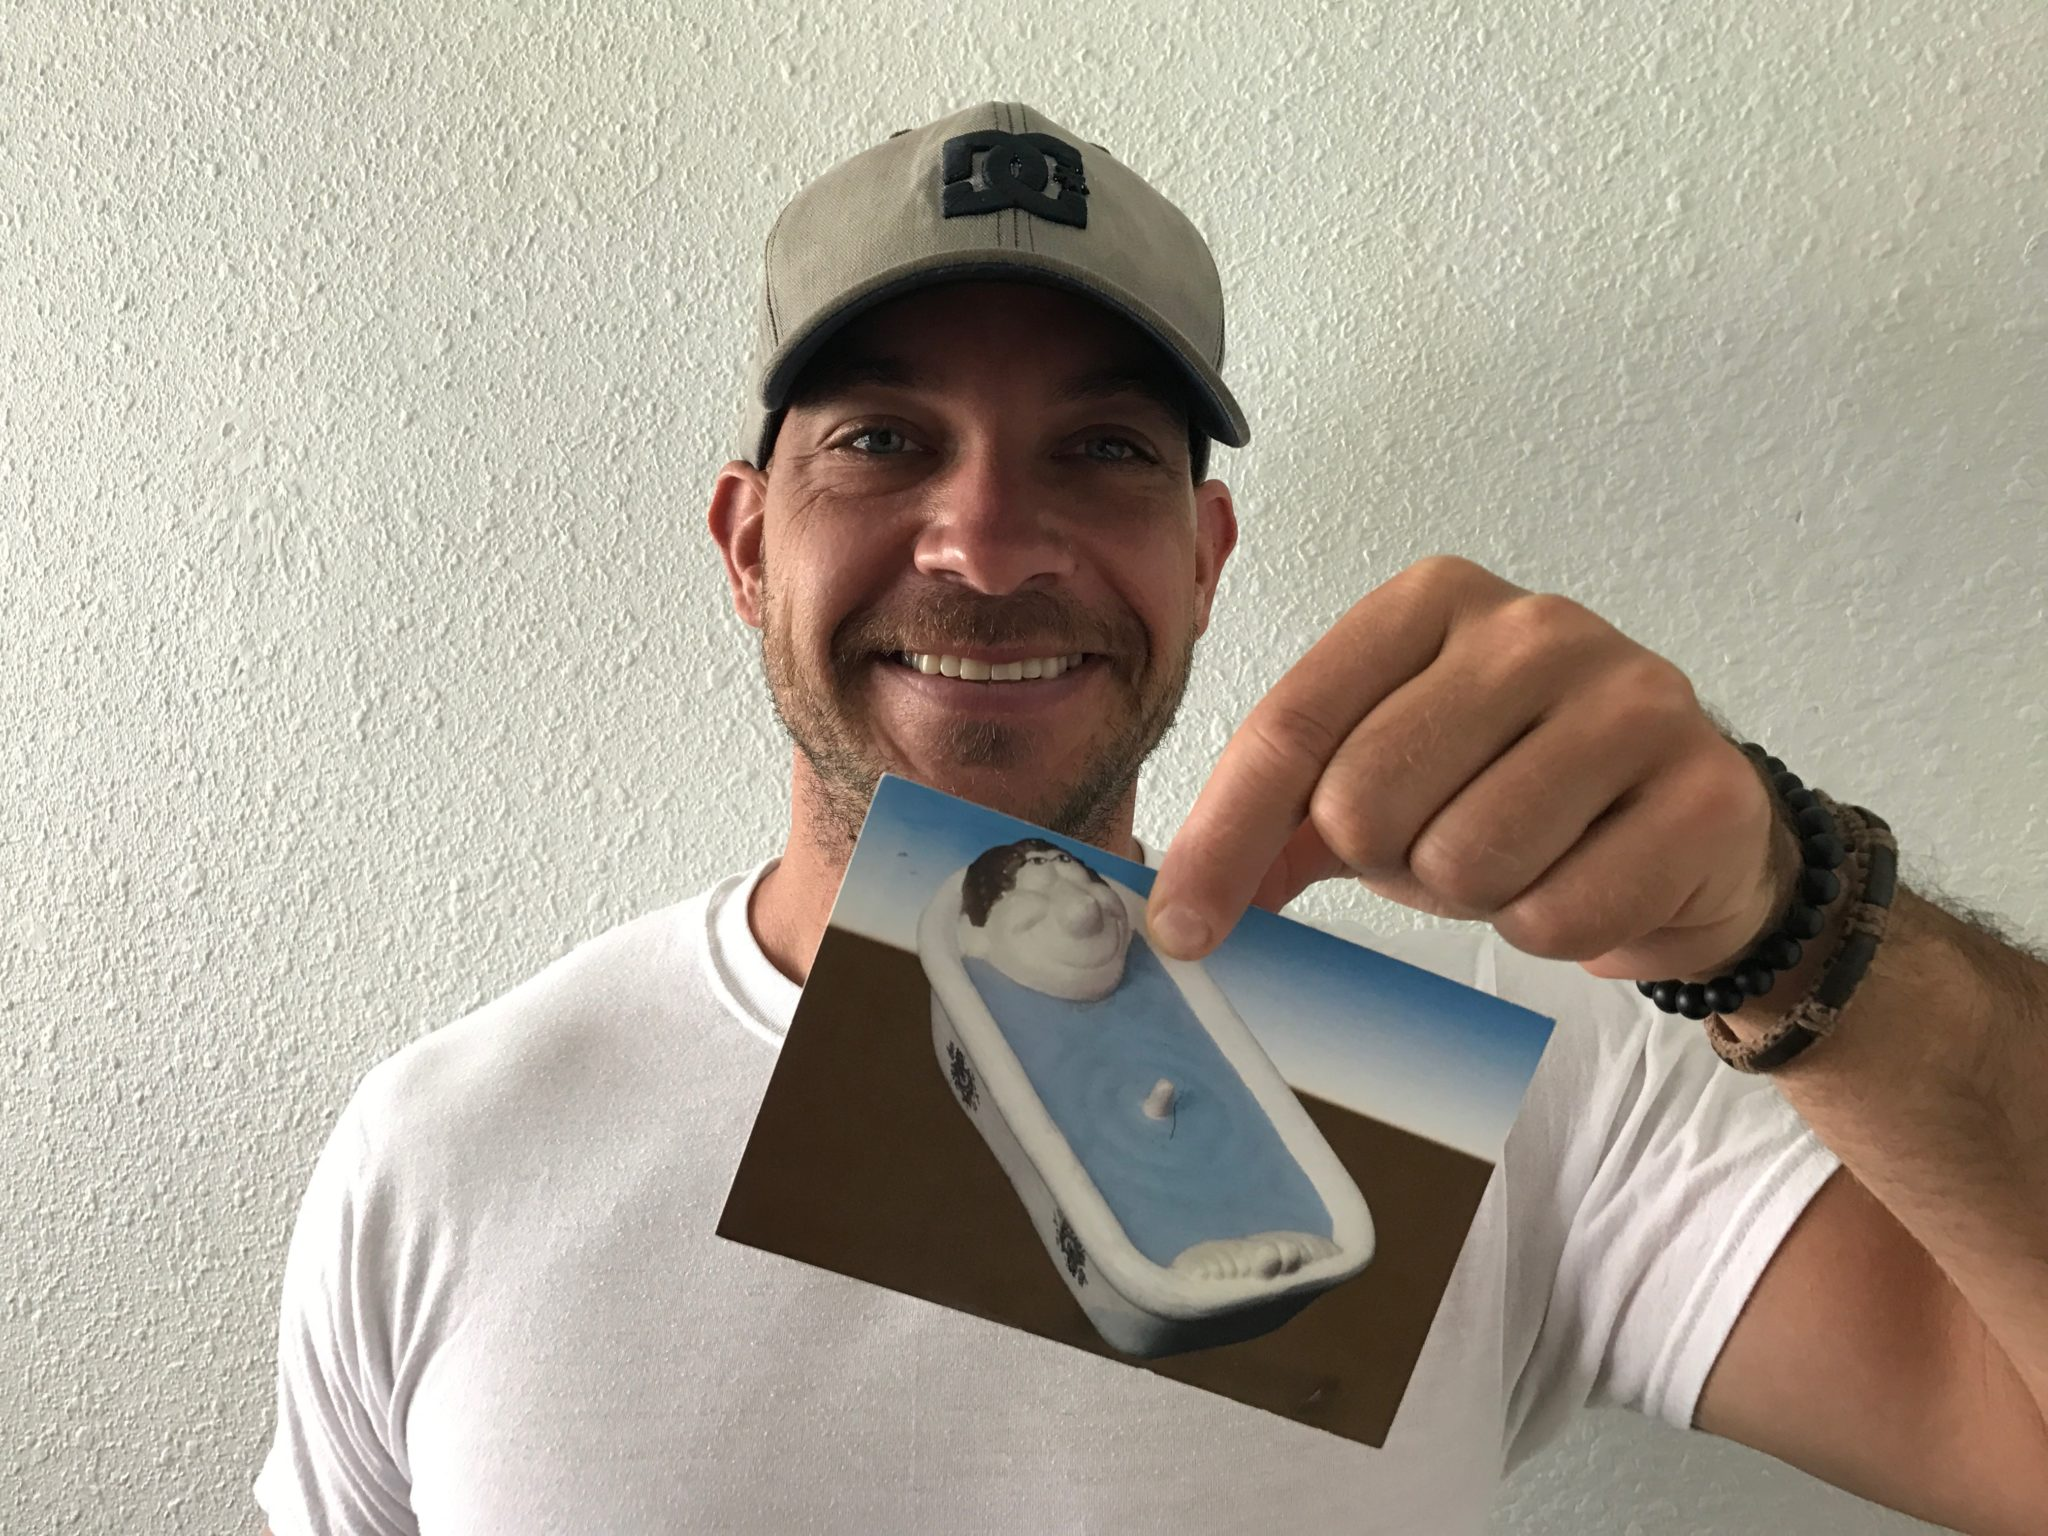 man wearing baseball hat smiling while holding a postcard with image of a man in a bathtub